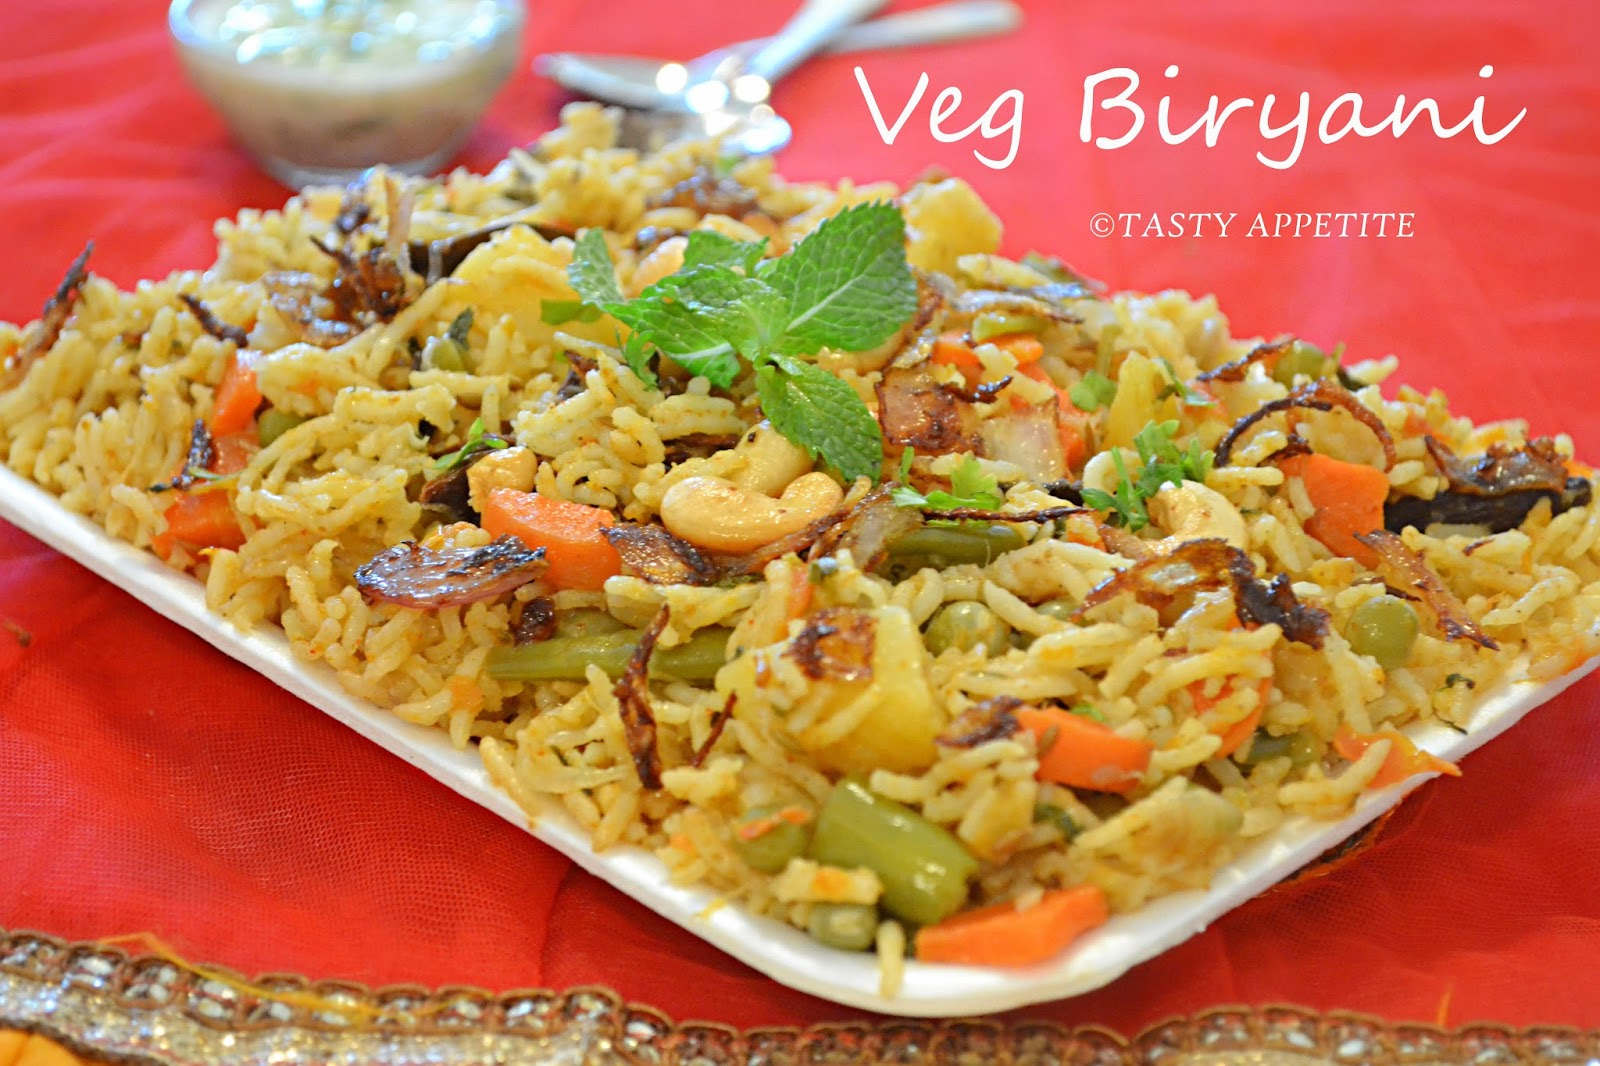 Vegetable biryani spicy vegetable biryani recipe easy biryani vegetable biryani spicy vegetable biryani recipe easy biryani recipes forumfinder